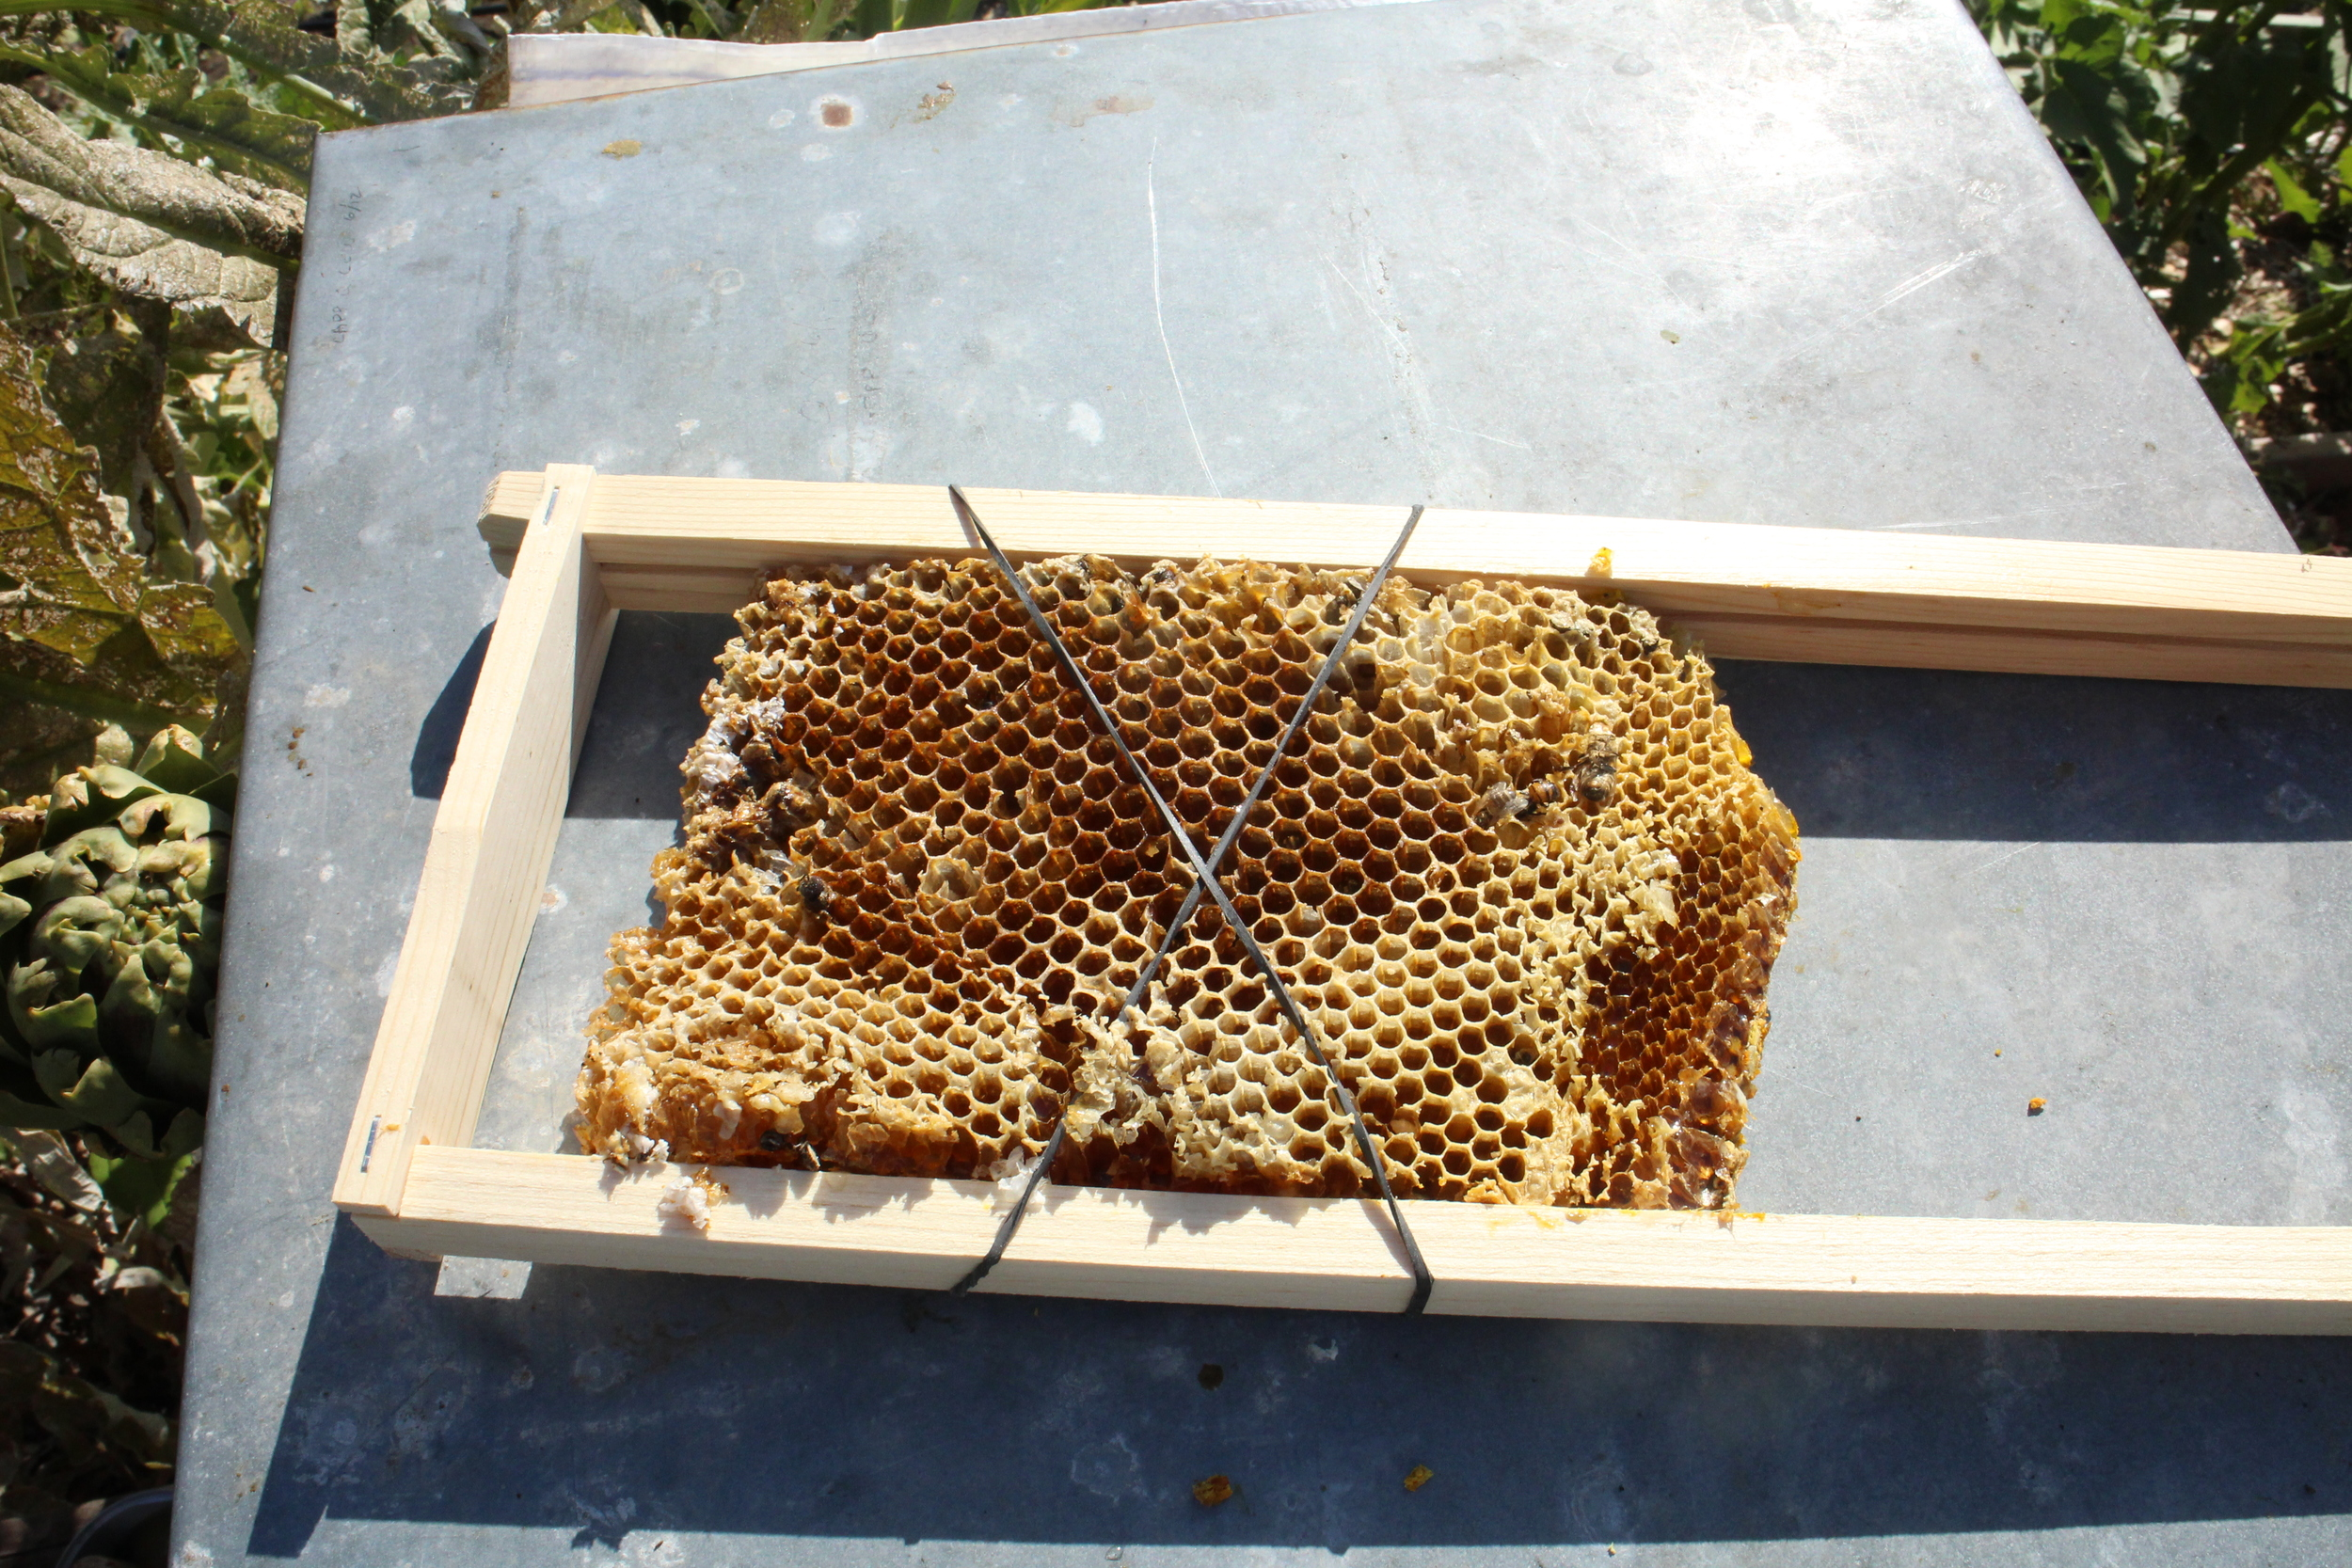 Bees will begin immediately to attach the comb to the frames.